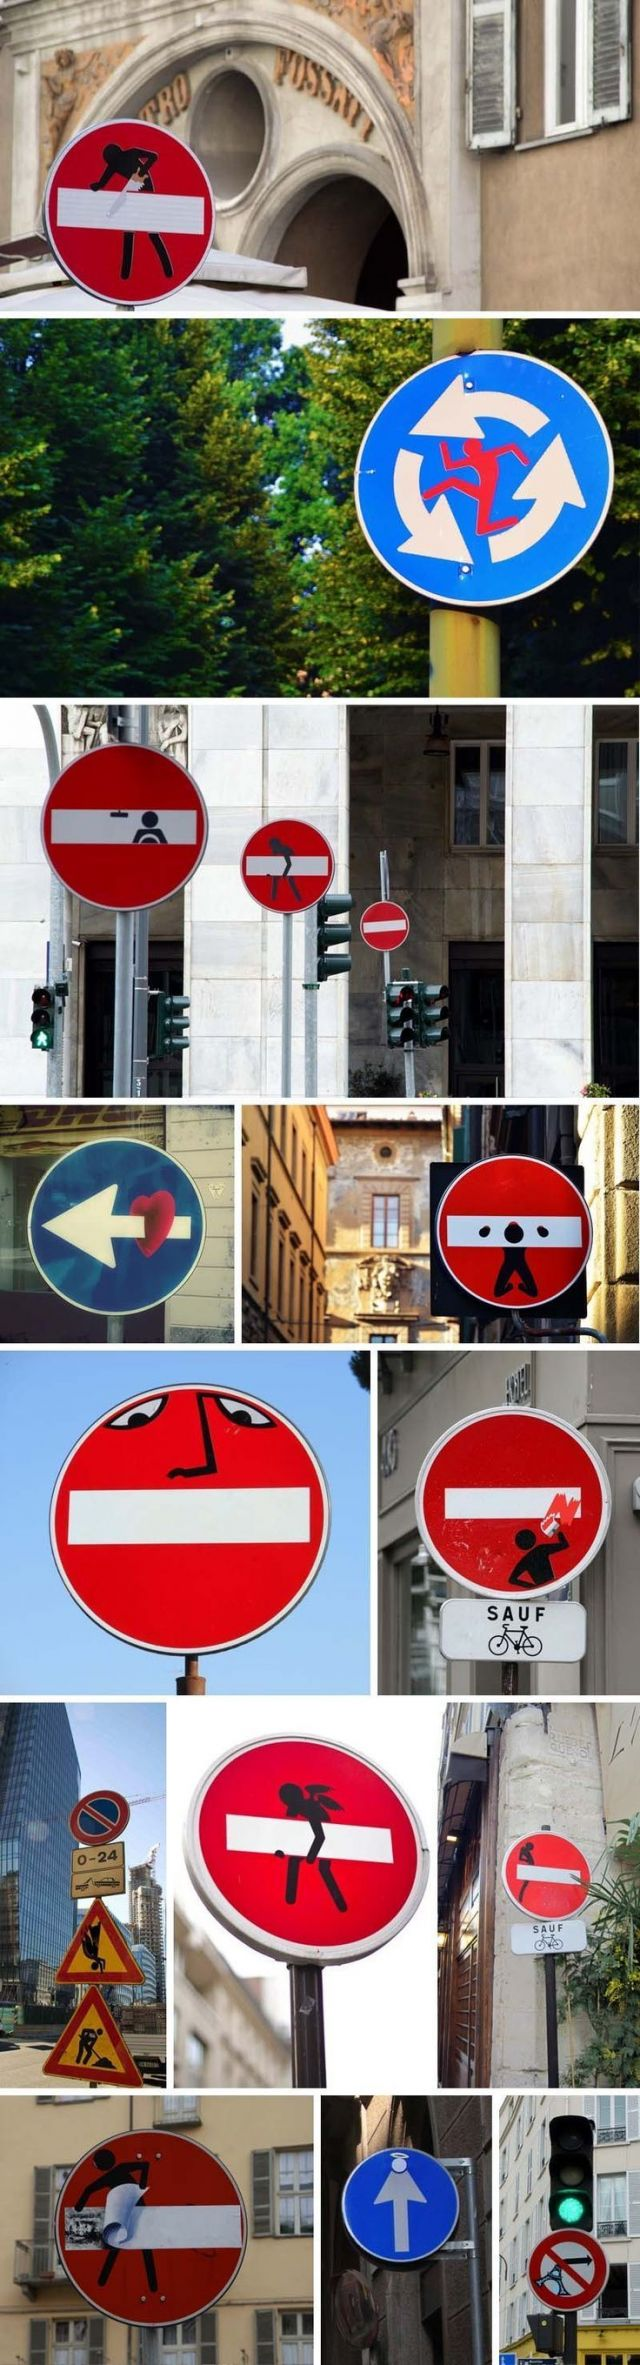 Funny signs on the street